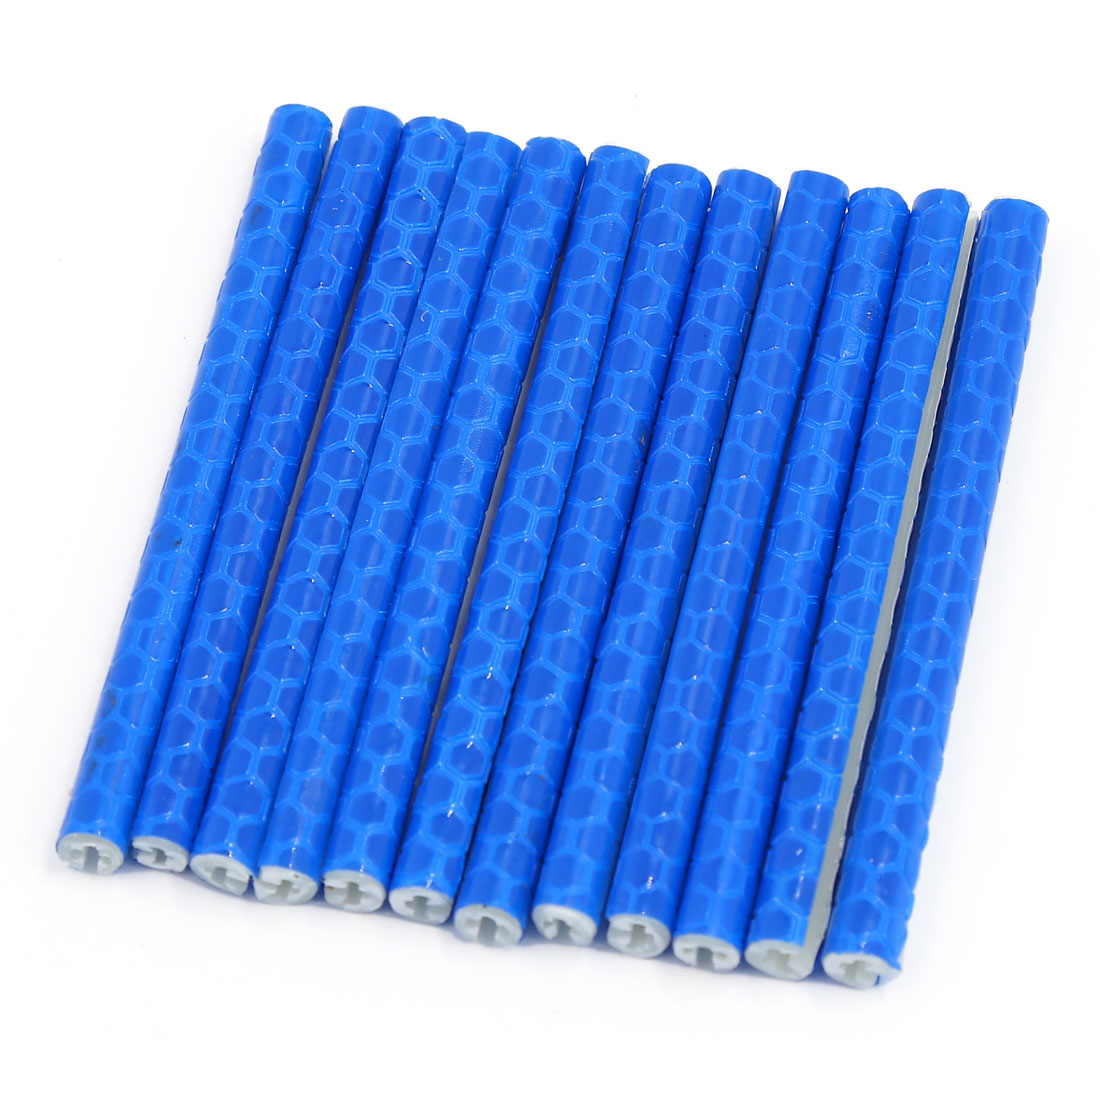 12 Pcs Blue Bicycle Bike Wheel Rim Spoke Reflective Tube Warning Strip Reflector